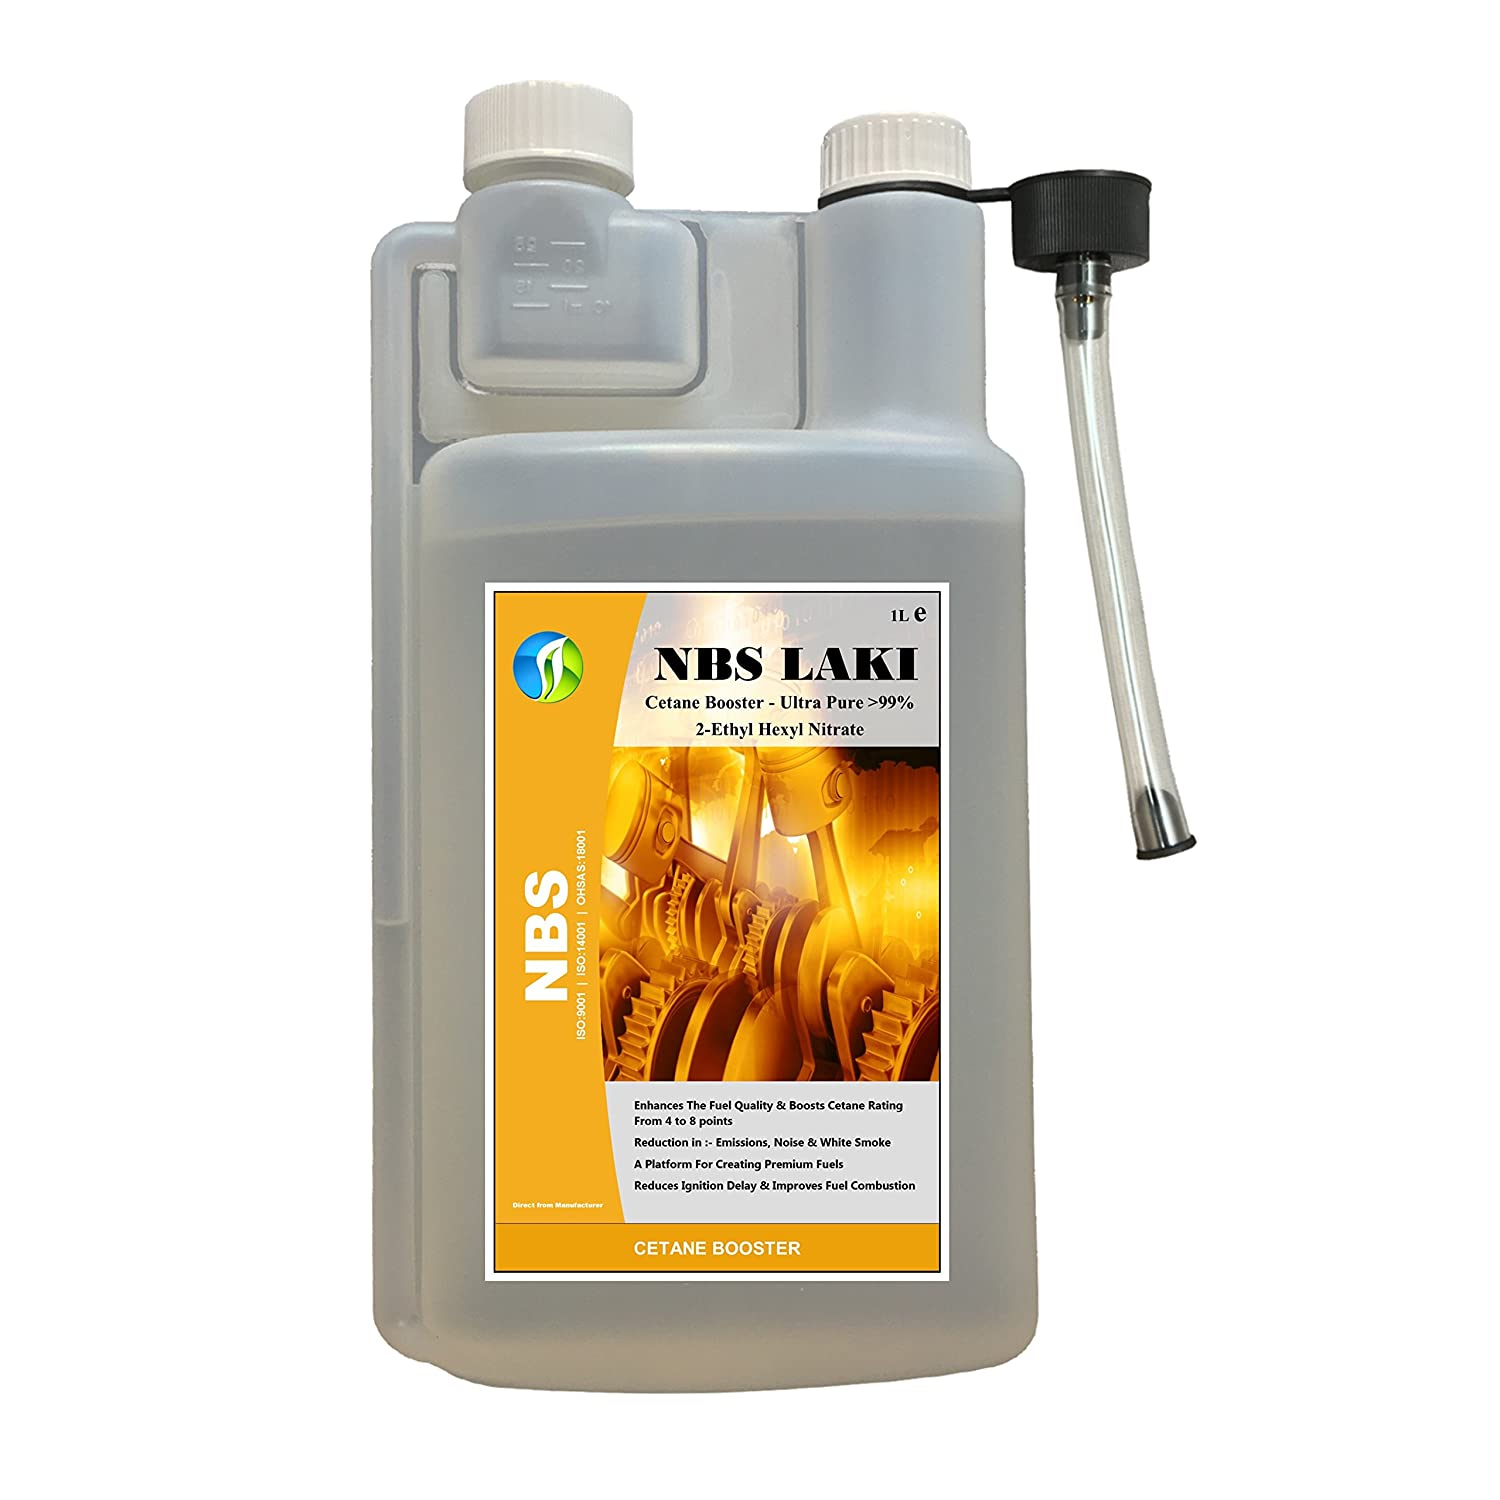 Cetano Booster Ultra Pure > 99% 2-ethyl hexyl Nitrato NBS Laki 1L combustible Diesel Aditivo Natures Bio Solutions Ltd.